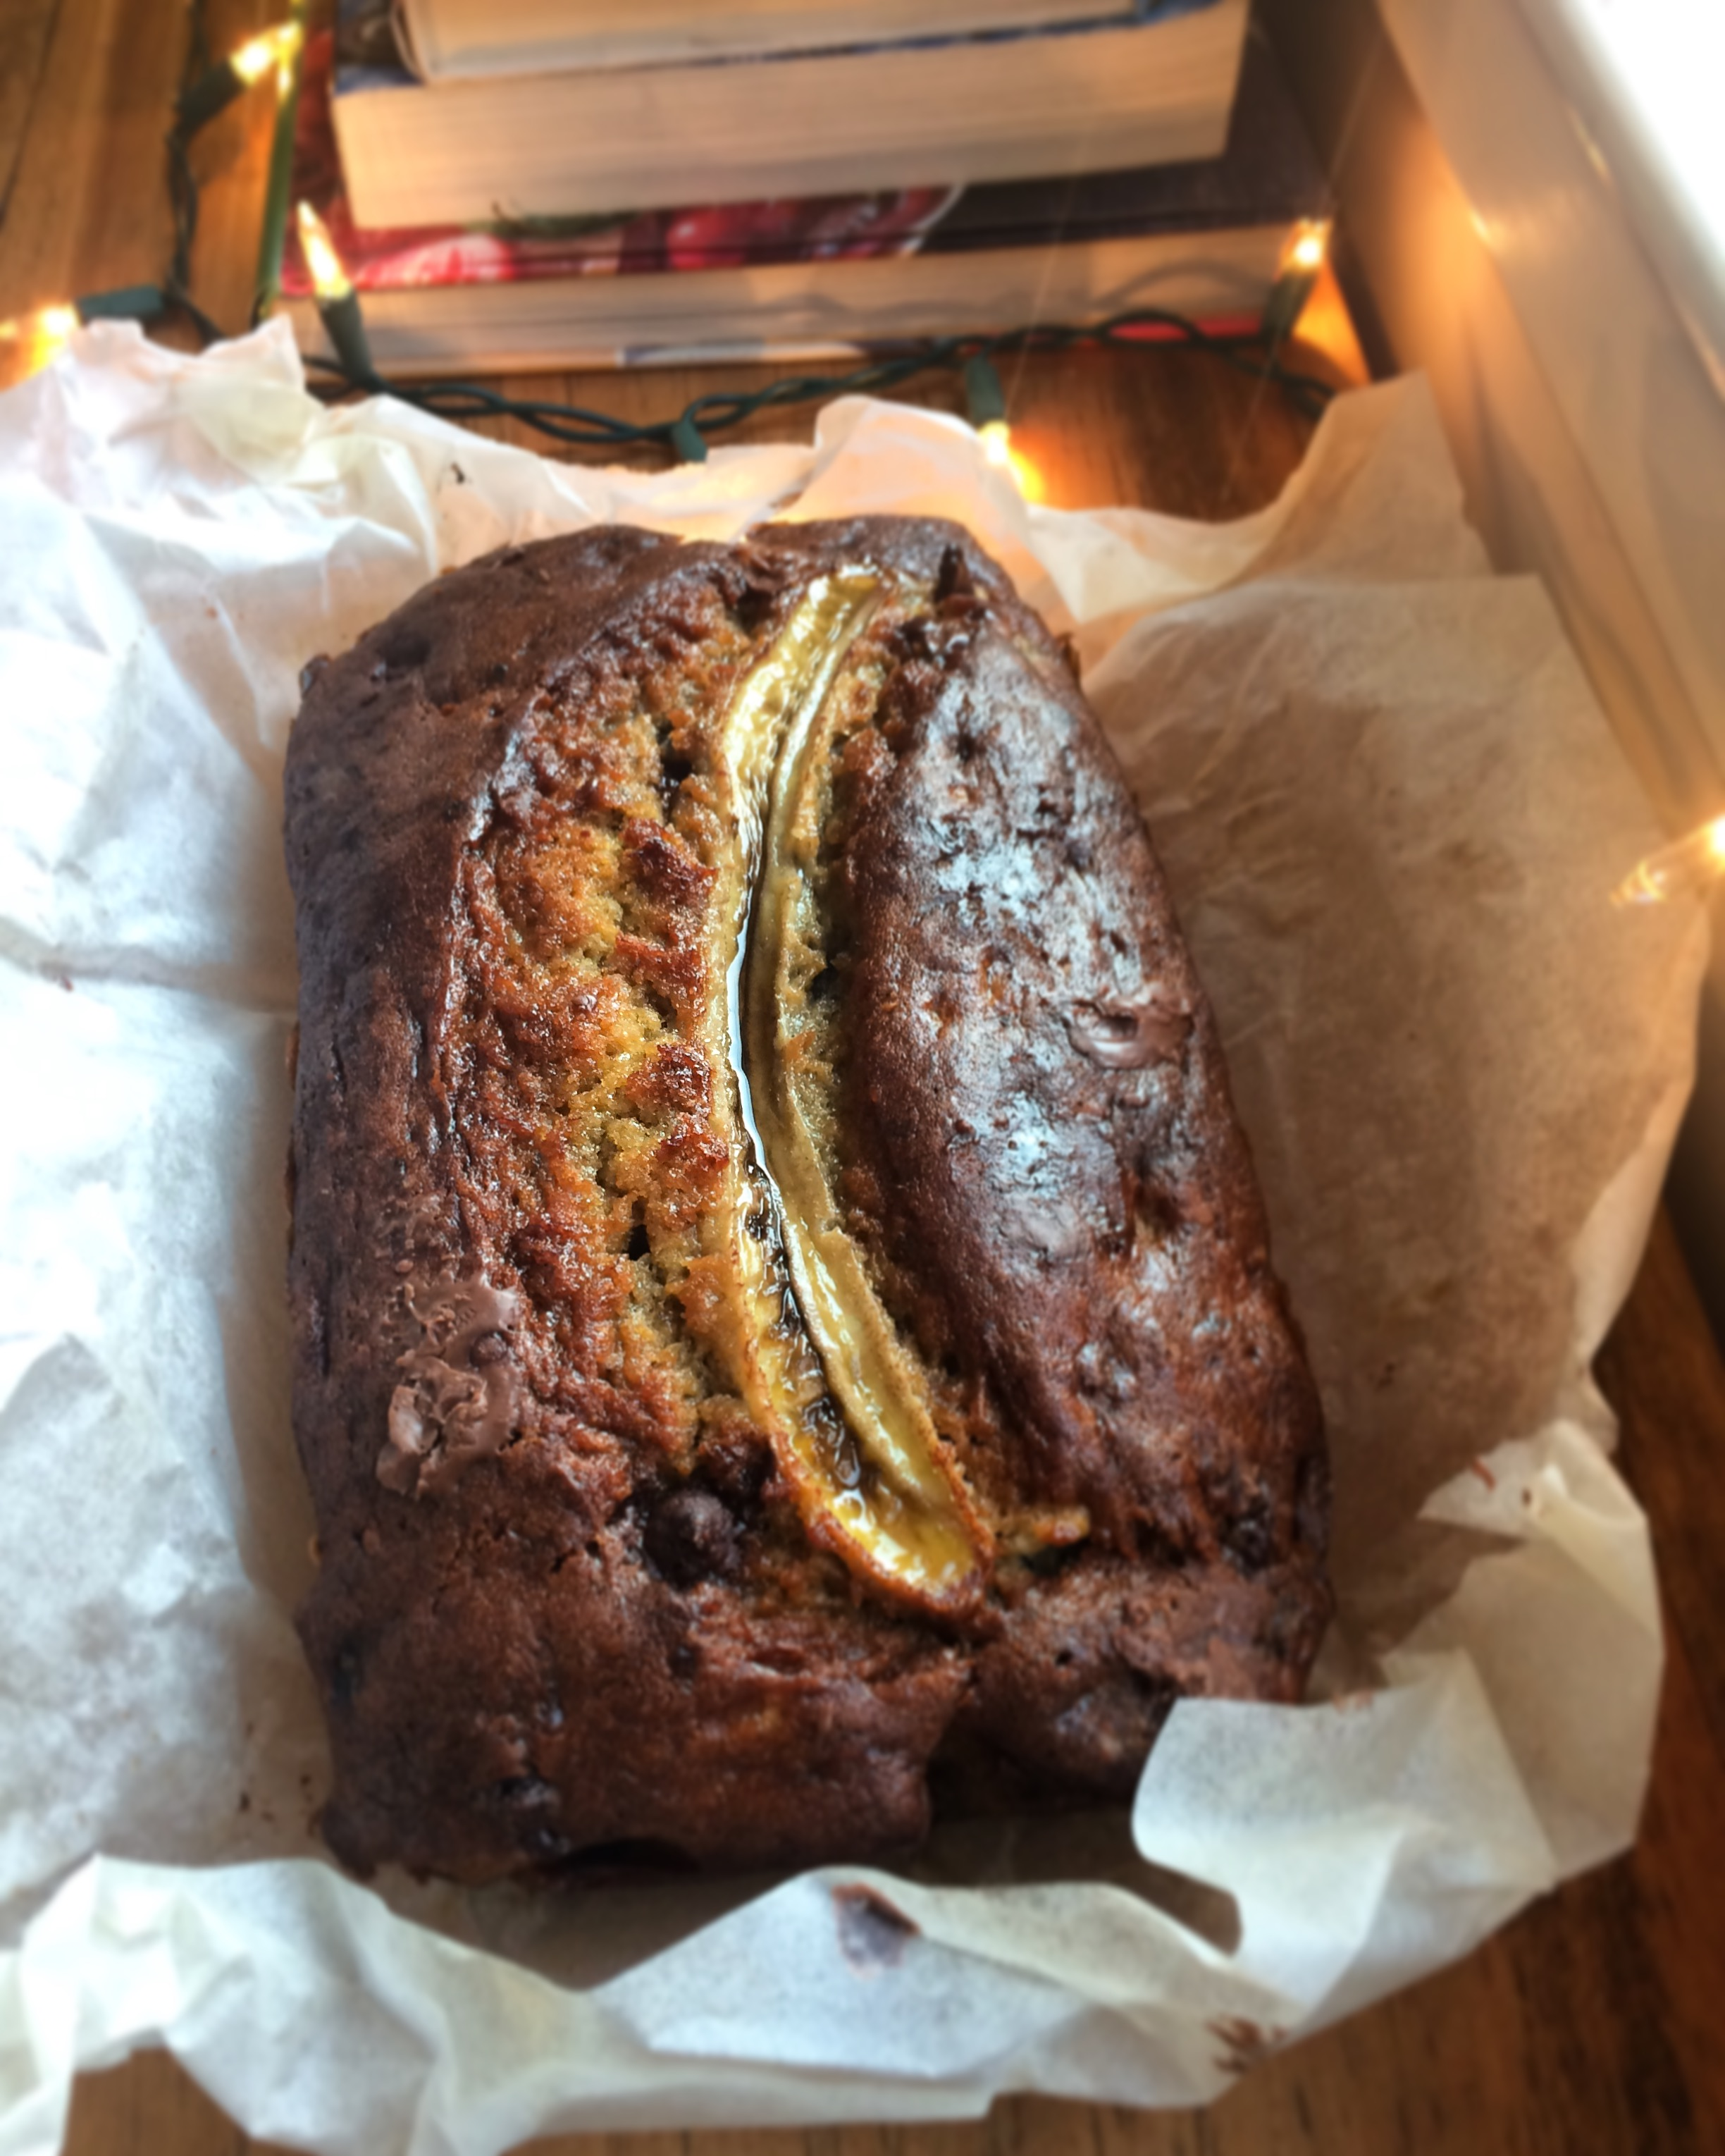 chocolate chip banana bread || planting my roots - a washington, dc-based food blog filled with nourishing and seasonal recipes